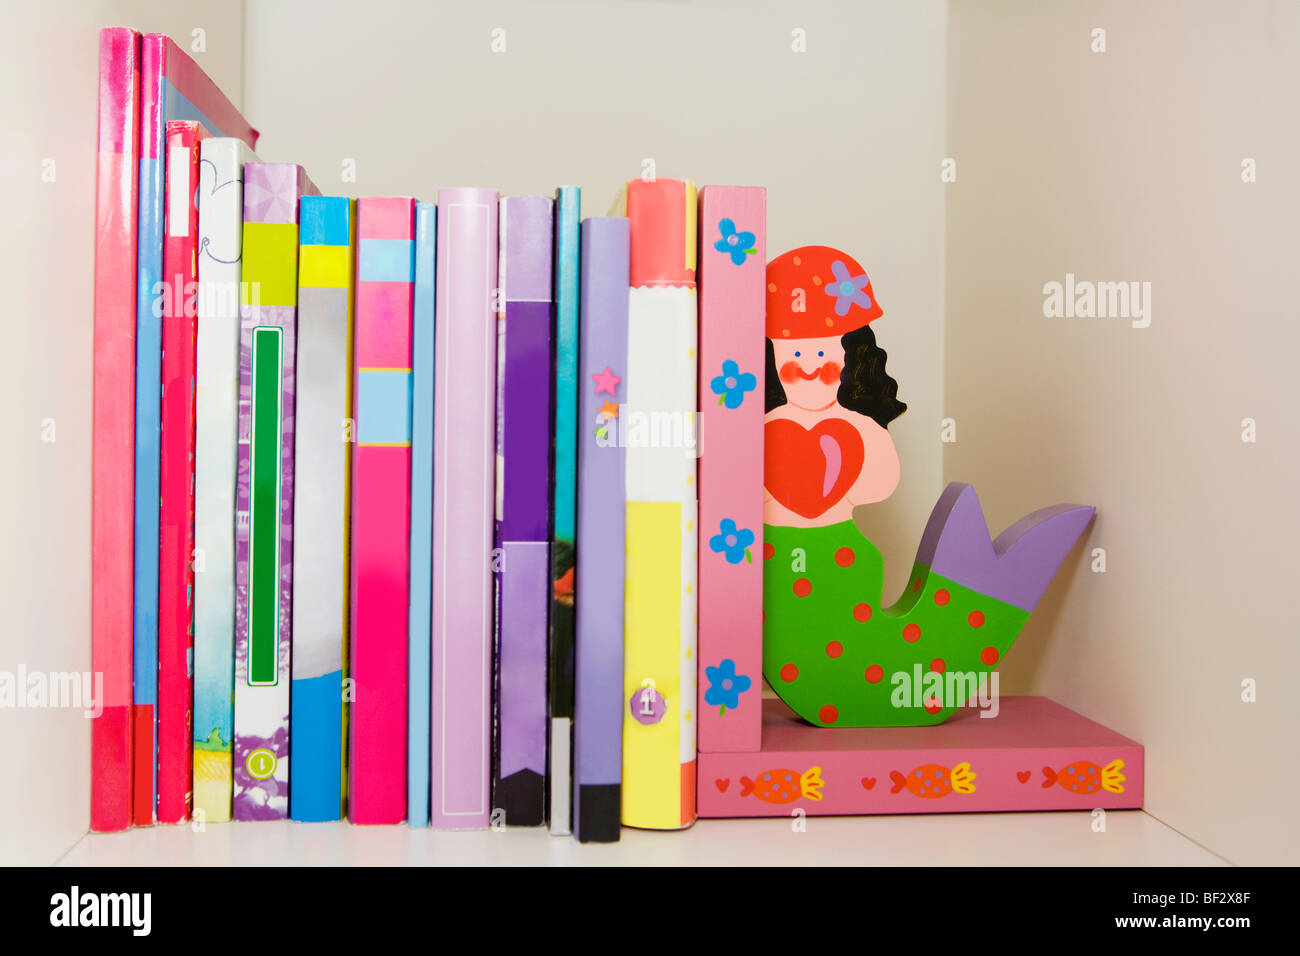 Close-up of books and toy mermaids on a shelf - Stock Image